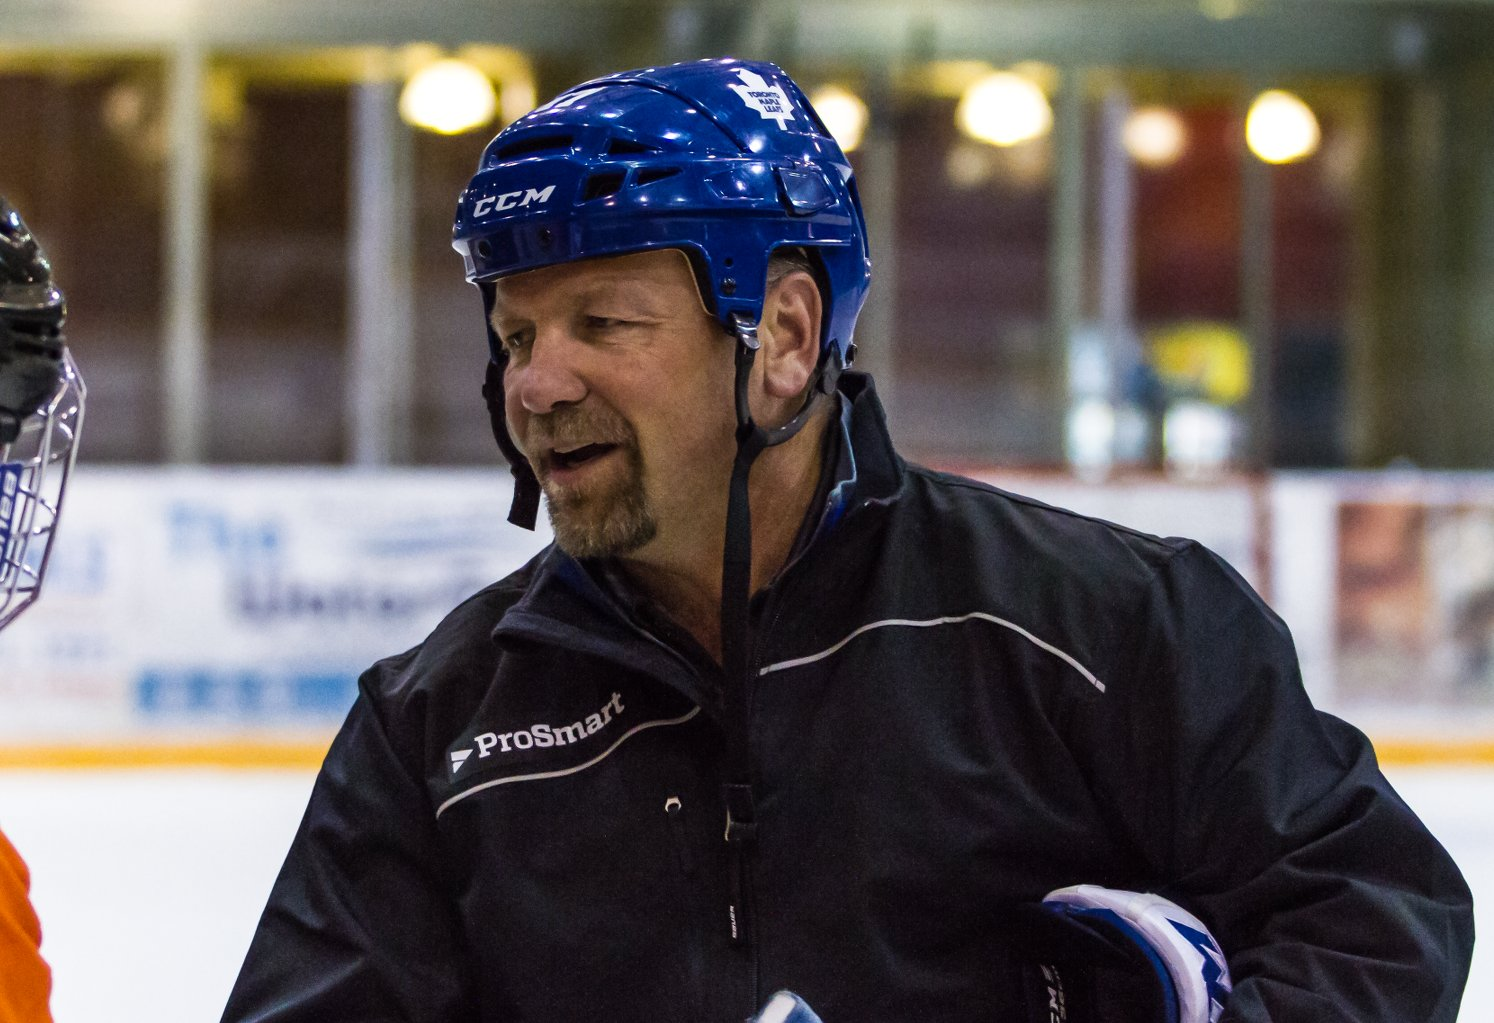 Wendel Clark - 15 Season NHL veteran 'Sportgo gives me a chance to give back to the game I love  and be a part of something  new and innovative. It's exciting to now have an online system that keeps everyone on the same page.'